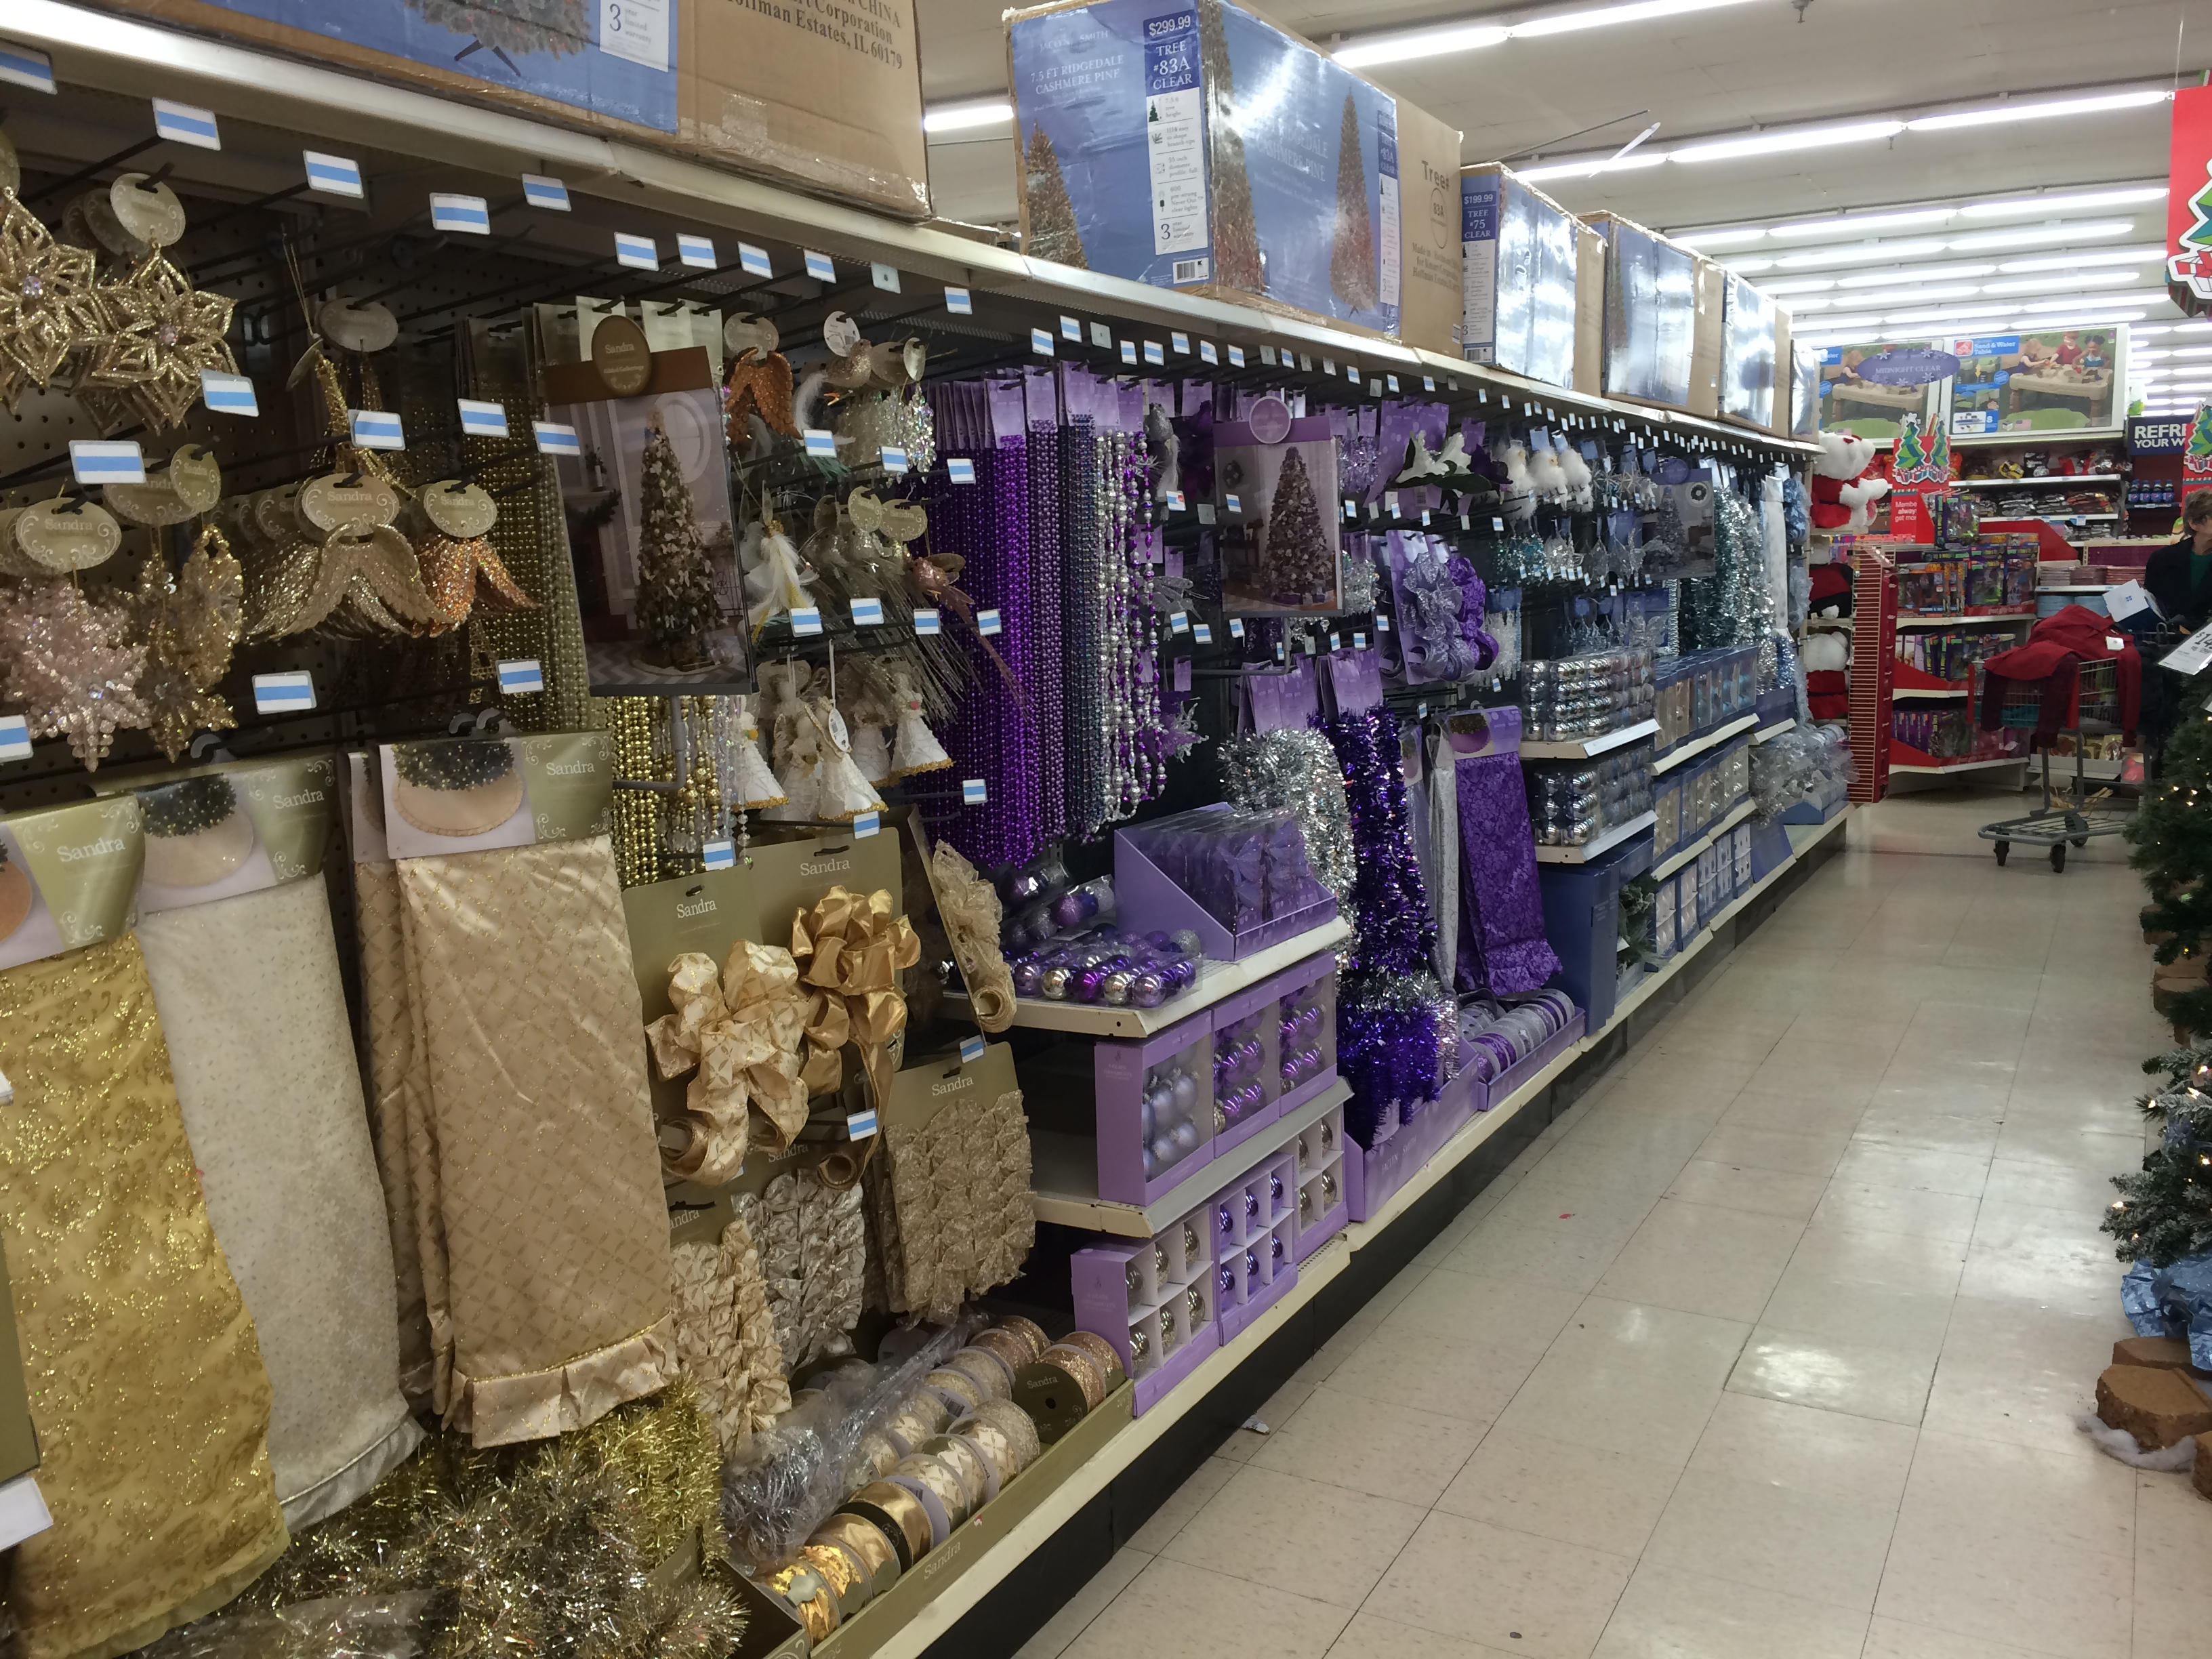 kmart holiday decor